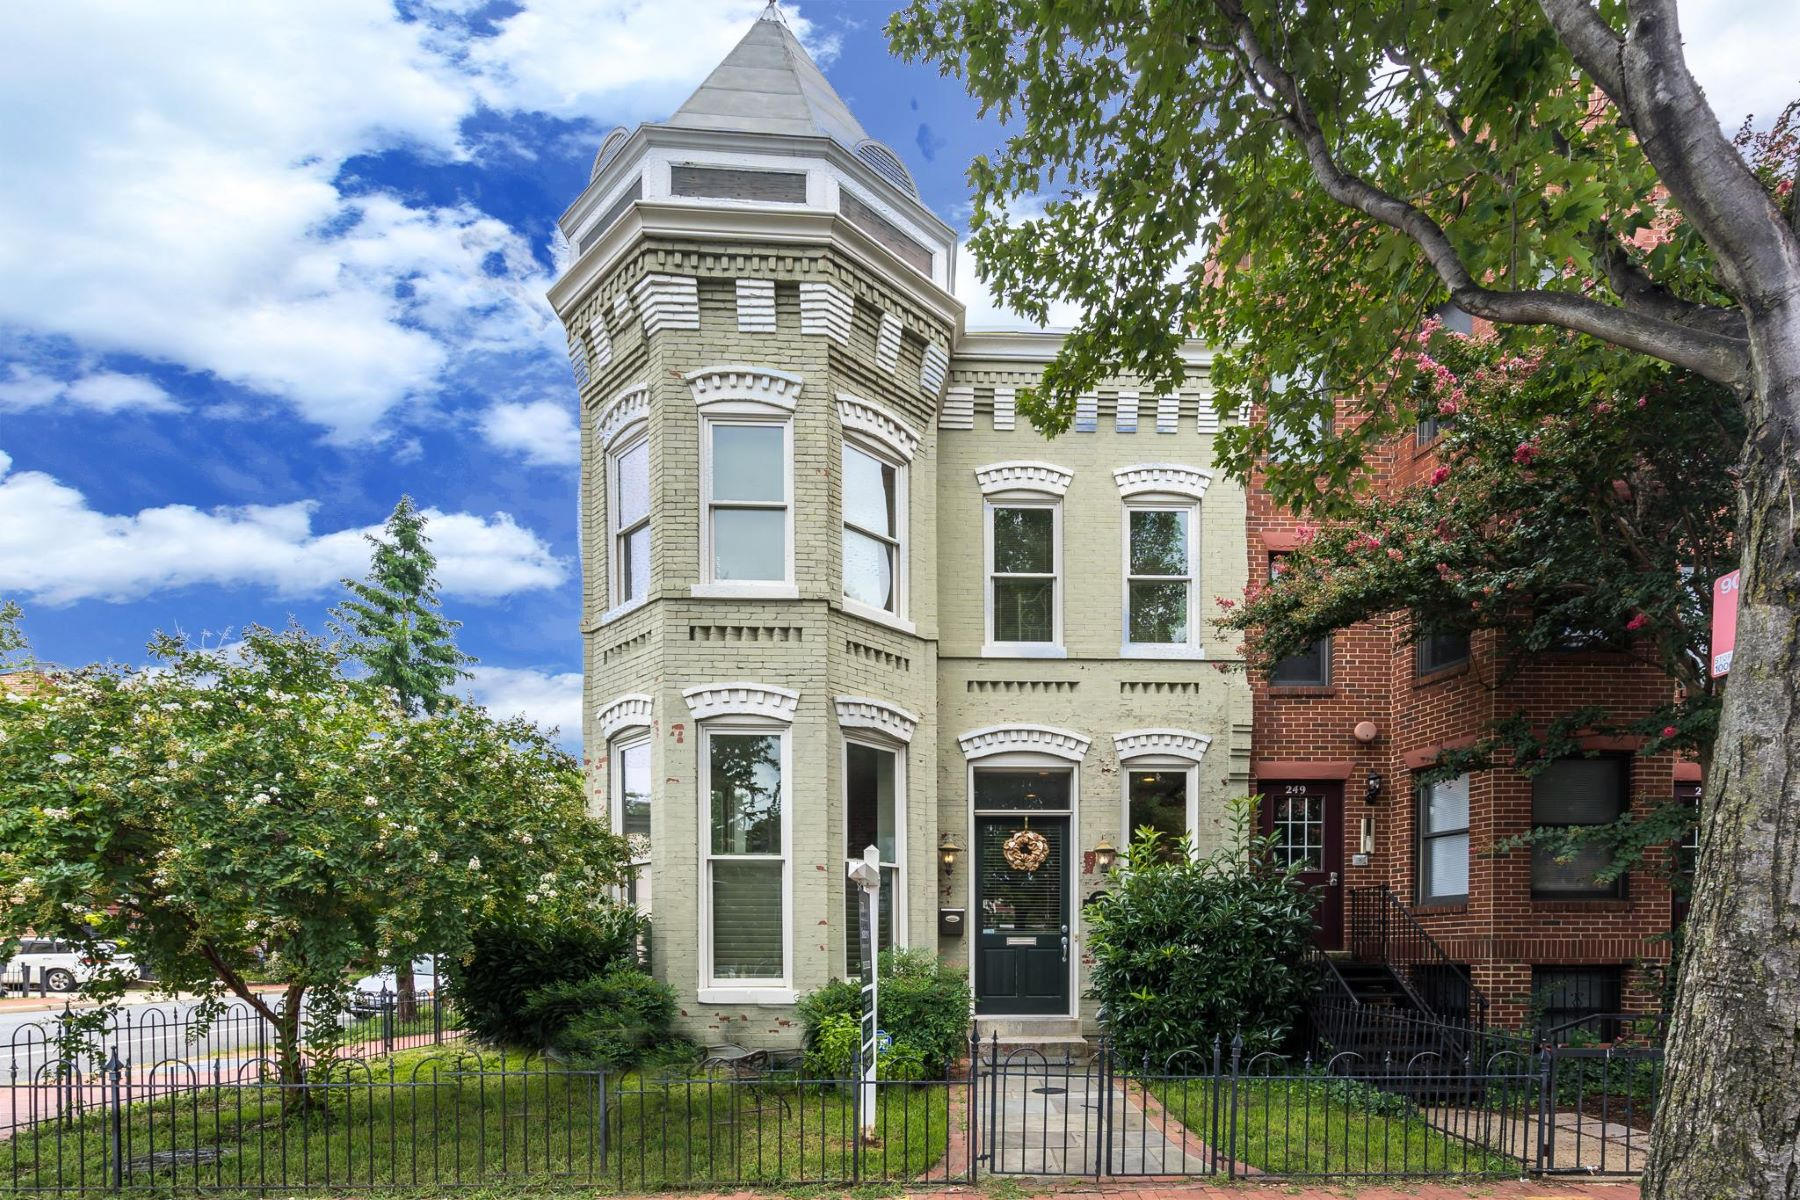 Single Family Home for Sale at 251 8th St Ne 251 8th St Ne Washington, District Of Columbia 20002 United States